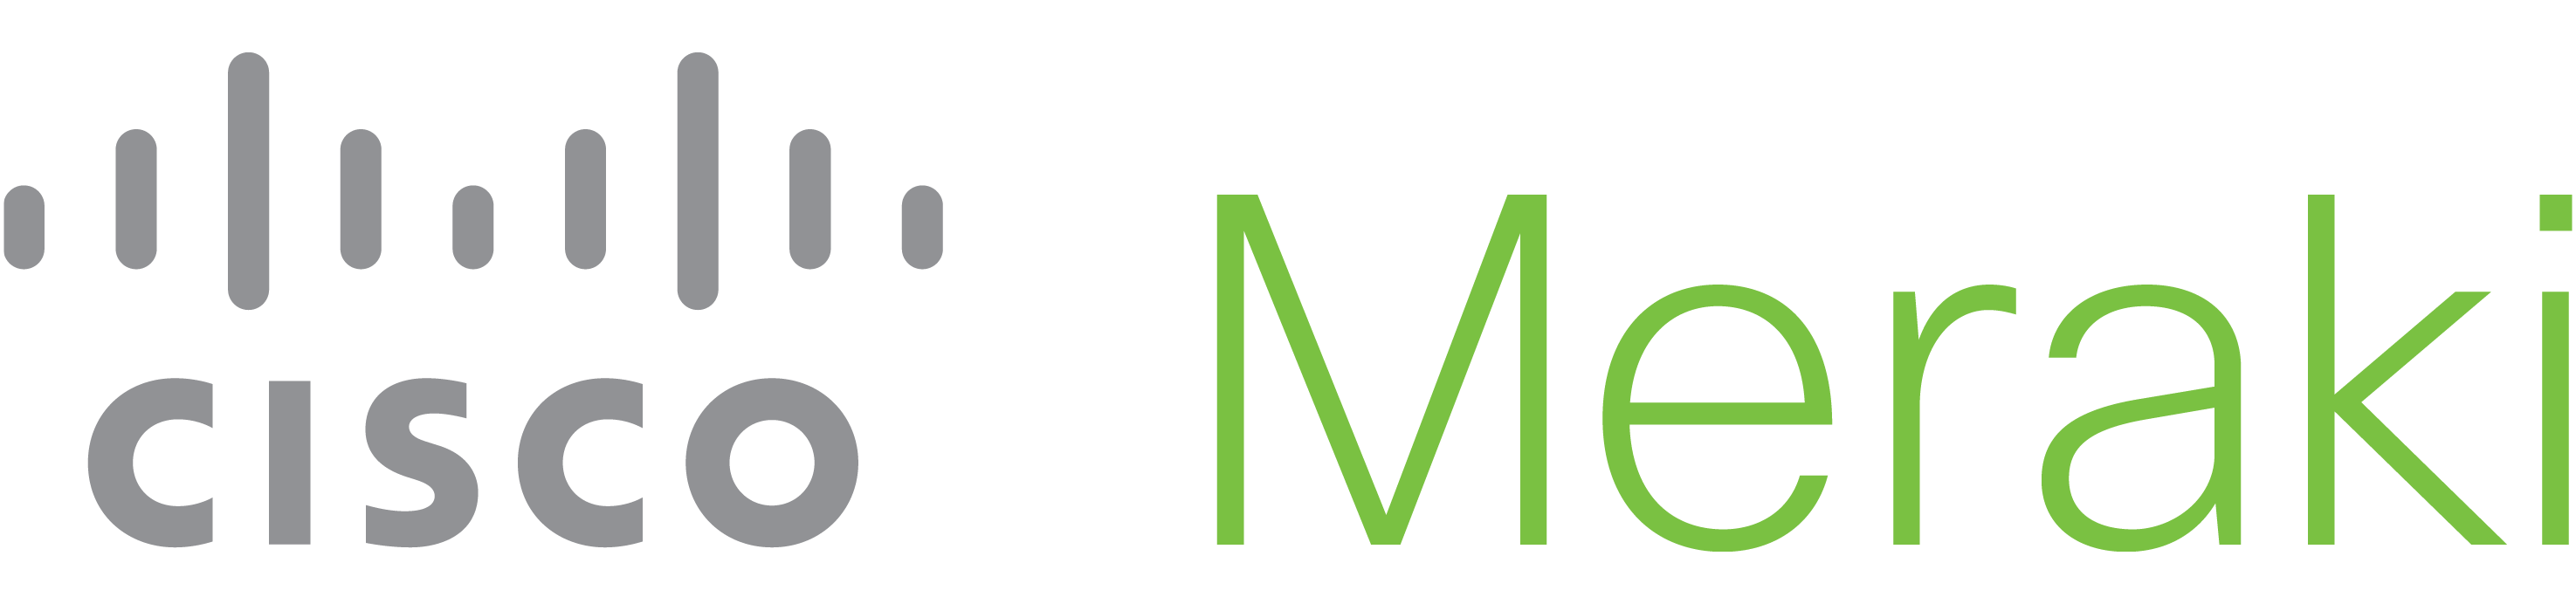 Cisco Meraki - Authorised Reseller